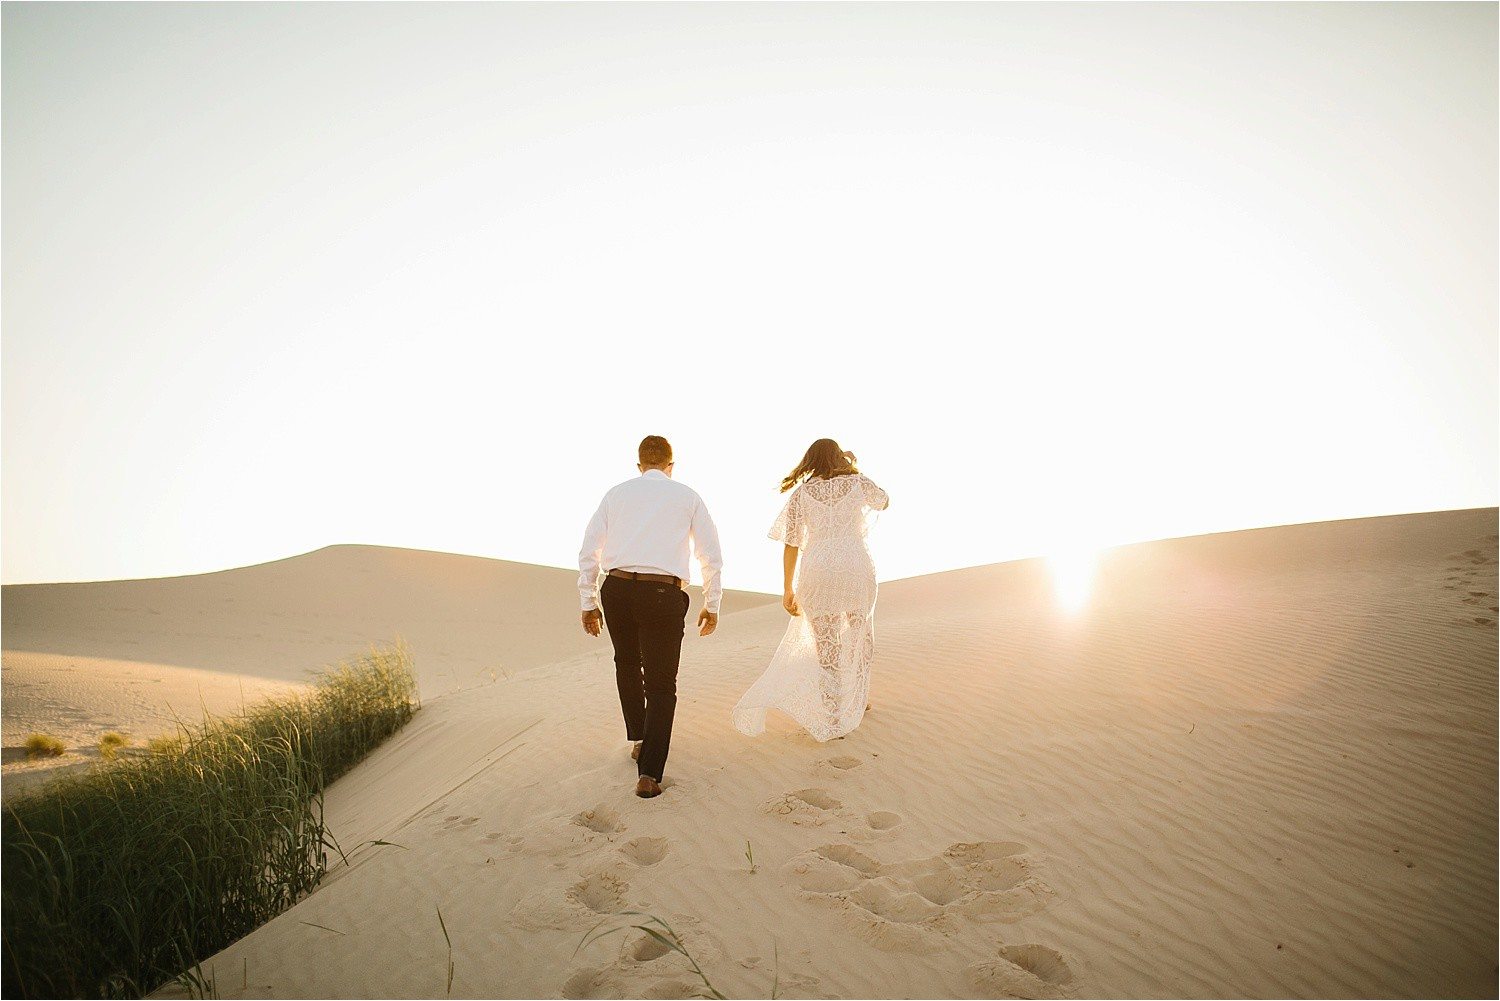 Lauren + Jacob __ a monahans sand dunes engagement session at sunrise by North Texas Wedding Photographer, Rachel Meagan Photography __ 23